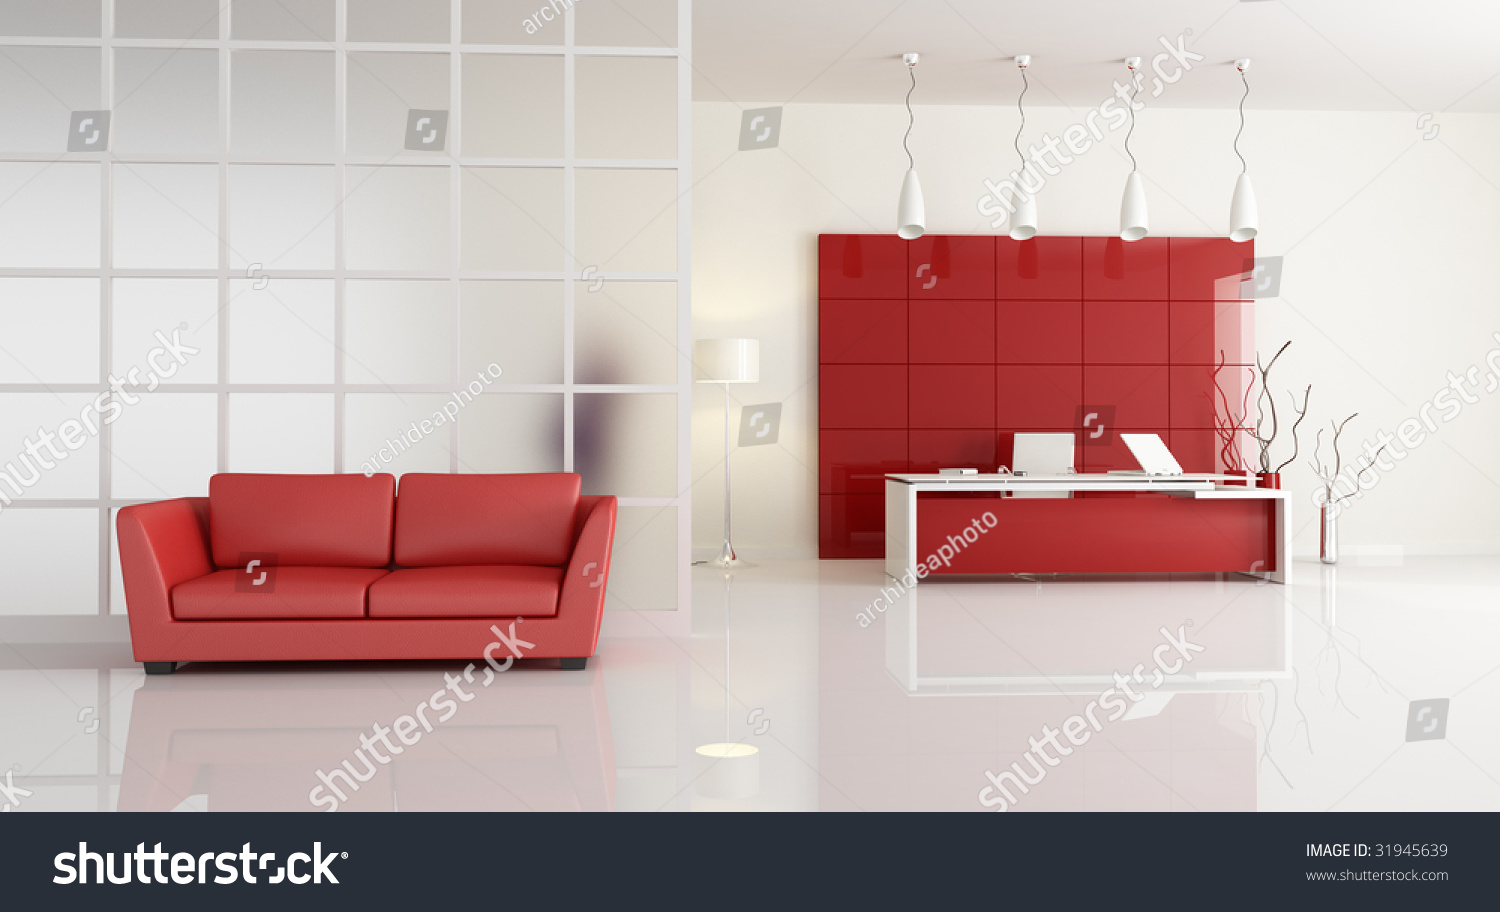 Red And White Office With Leathe Sofa Rendering Stock